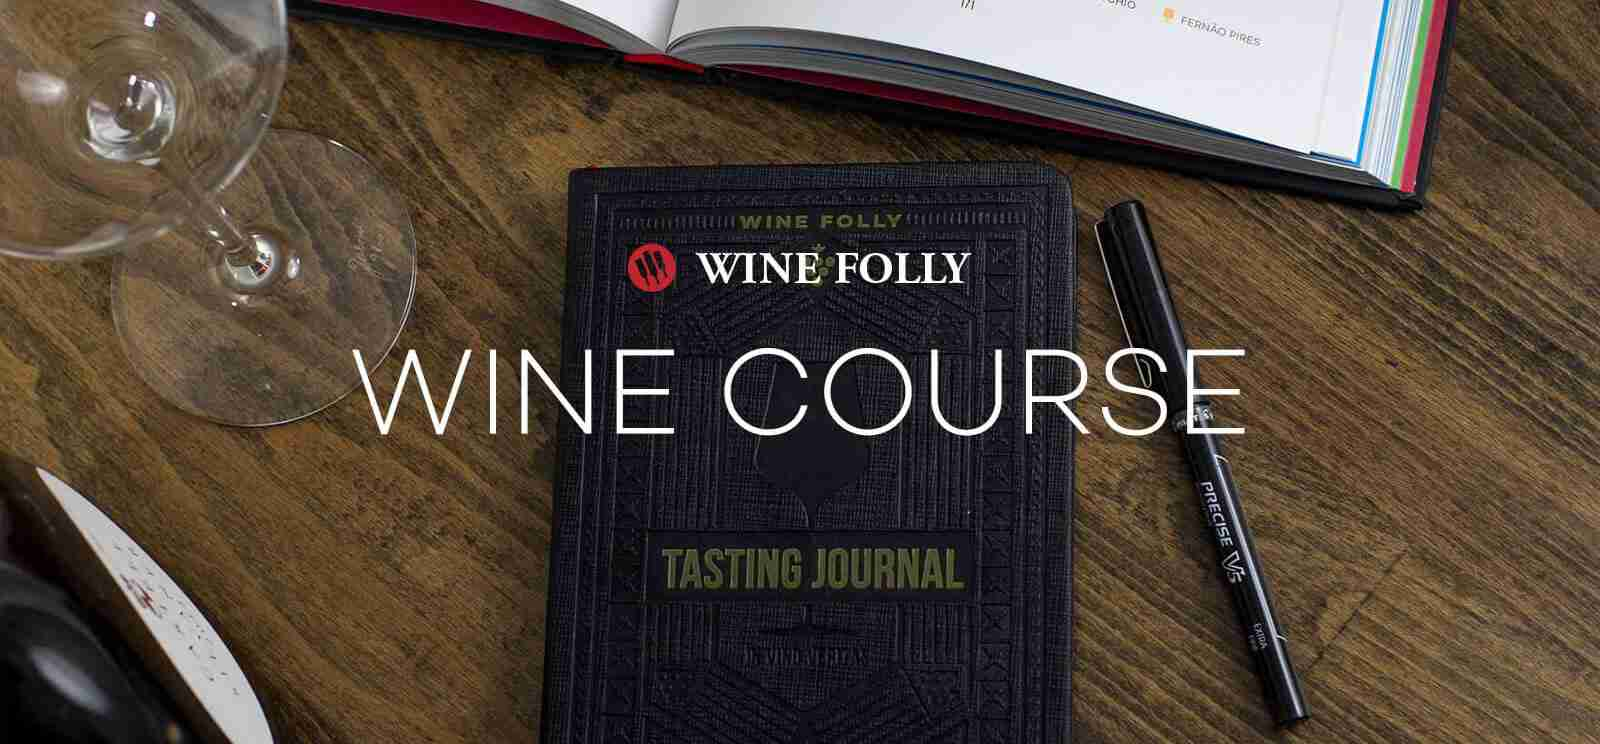 Online wine course by Wine Folly